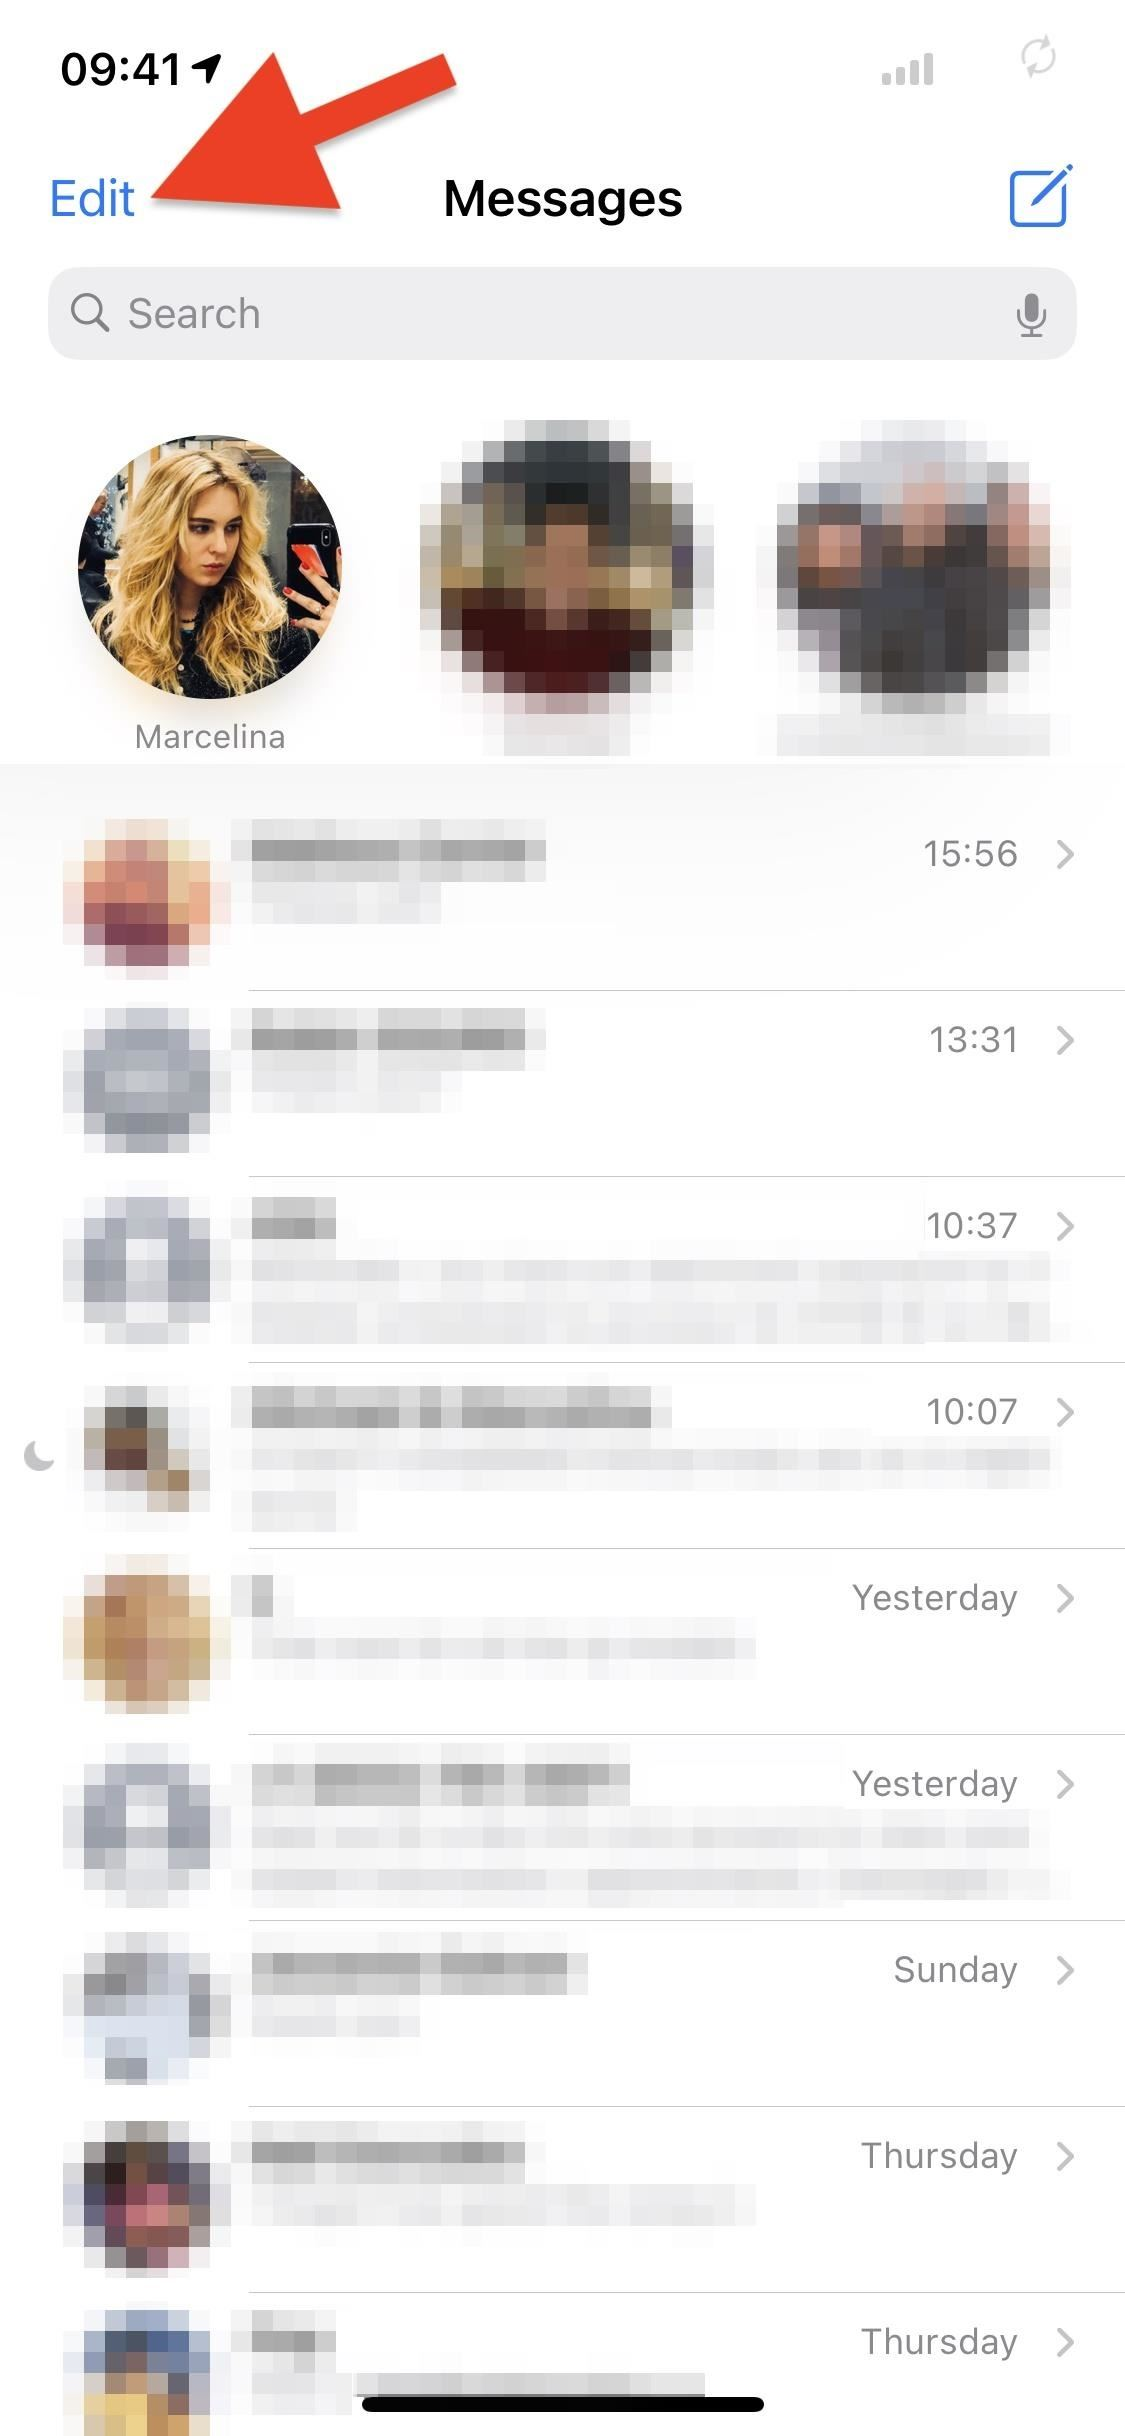 How to Stop Getting Those Annoying 'Share Your Name & Photo' Alerts in iMessage Threads on Your iPhone